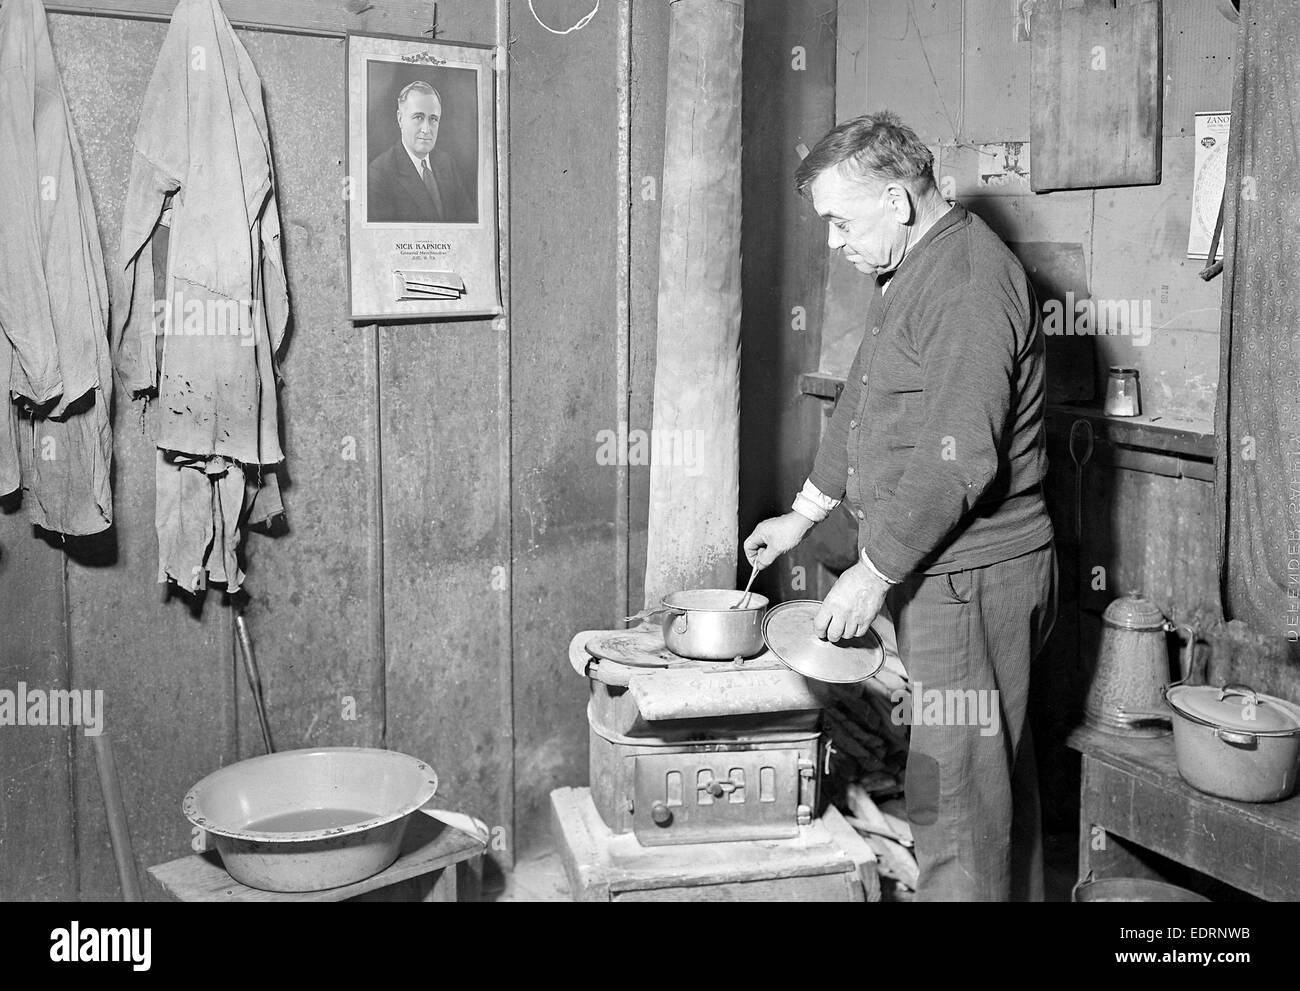 Scott's Run, West Virginia. Unemployed bachelor, Jere - This is typical of a particular group of stranded men Stock Photo